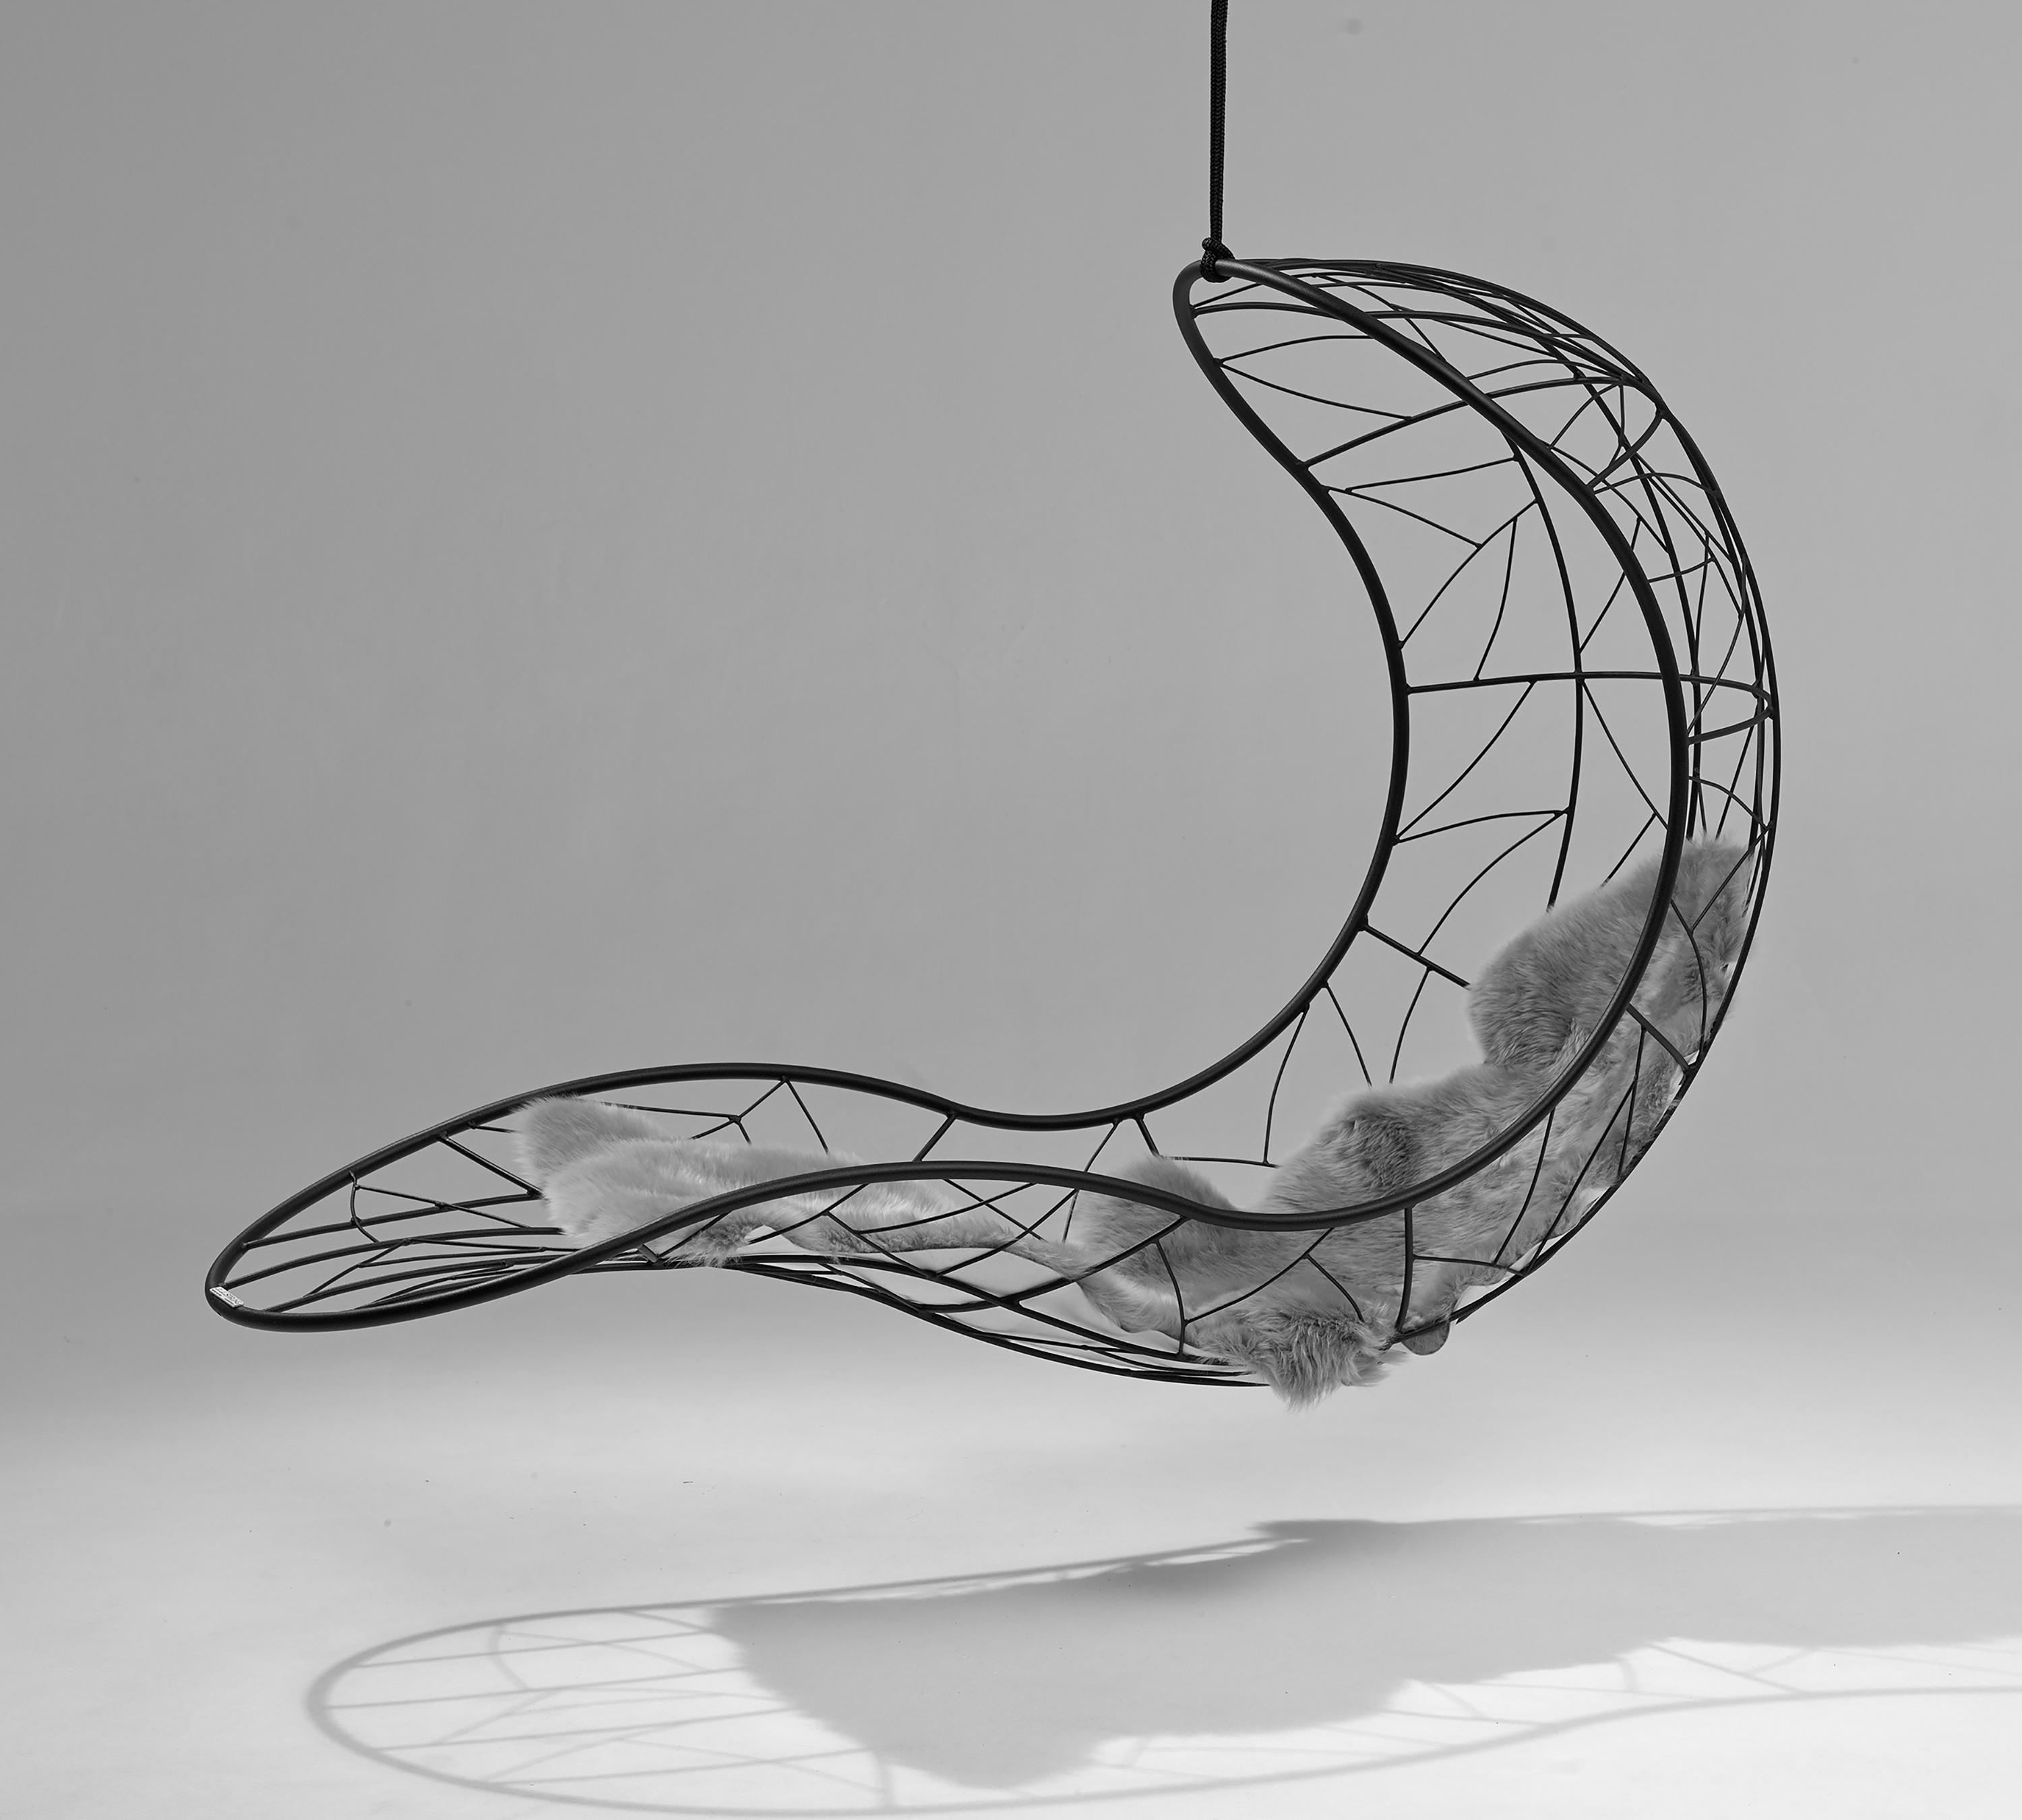 swing chair johannesburg x2 office single recliner hanging garden chairs from